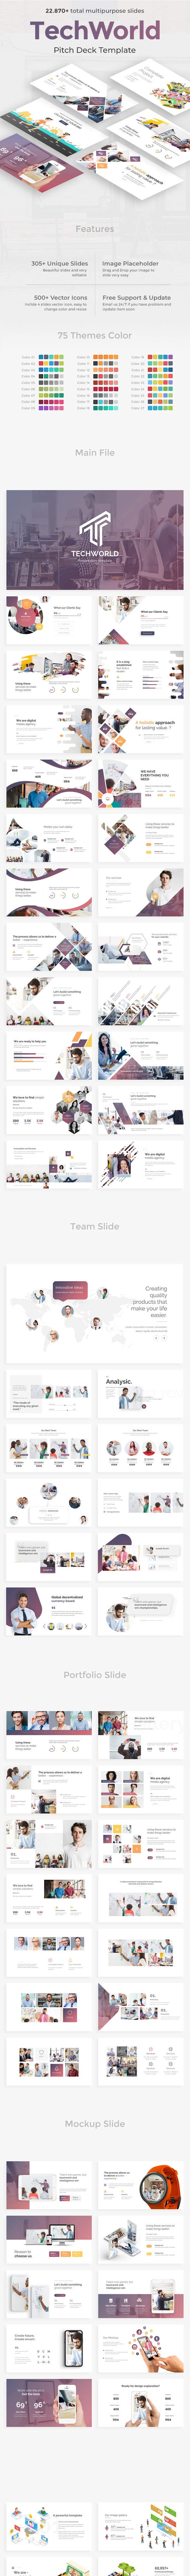 TechWorld Pitch Deck Multipurpose Keynote Template - Business Keynote Templates